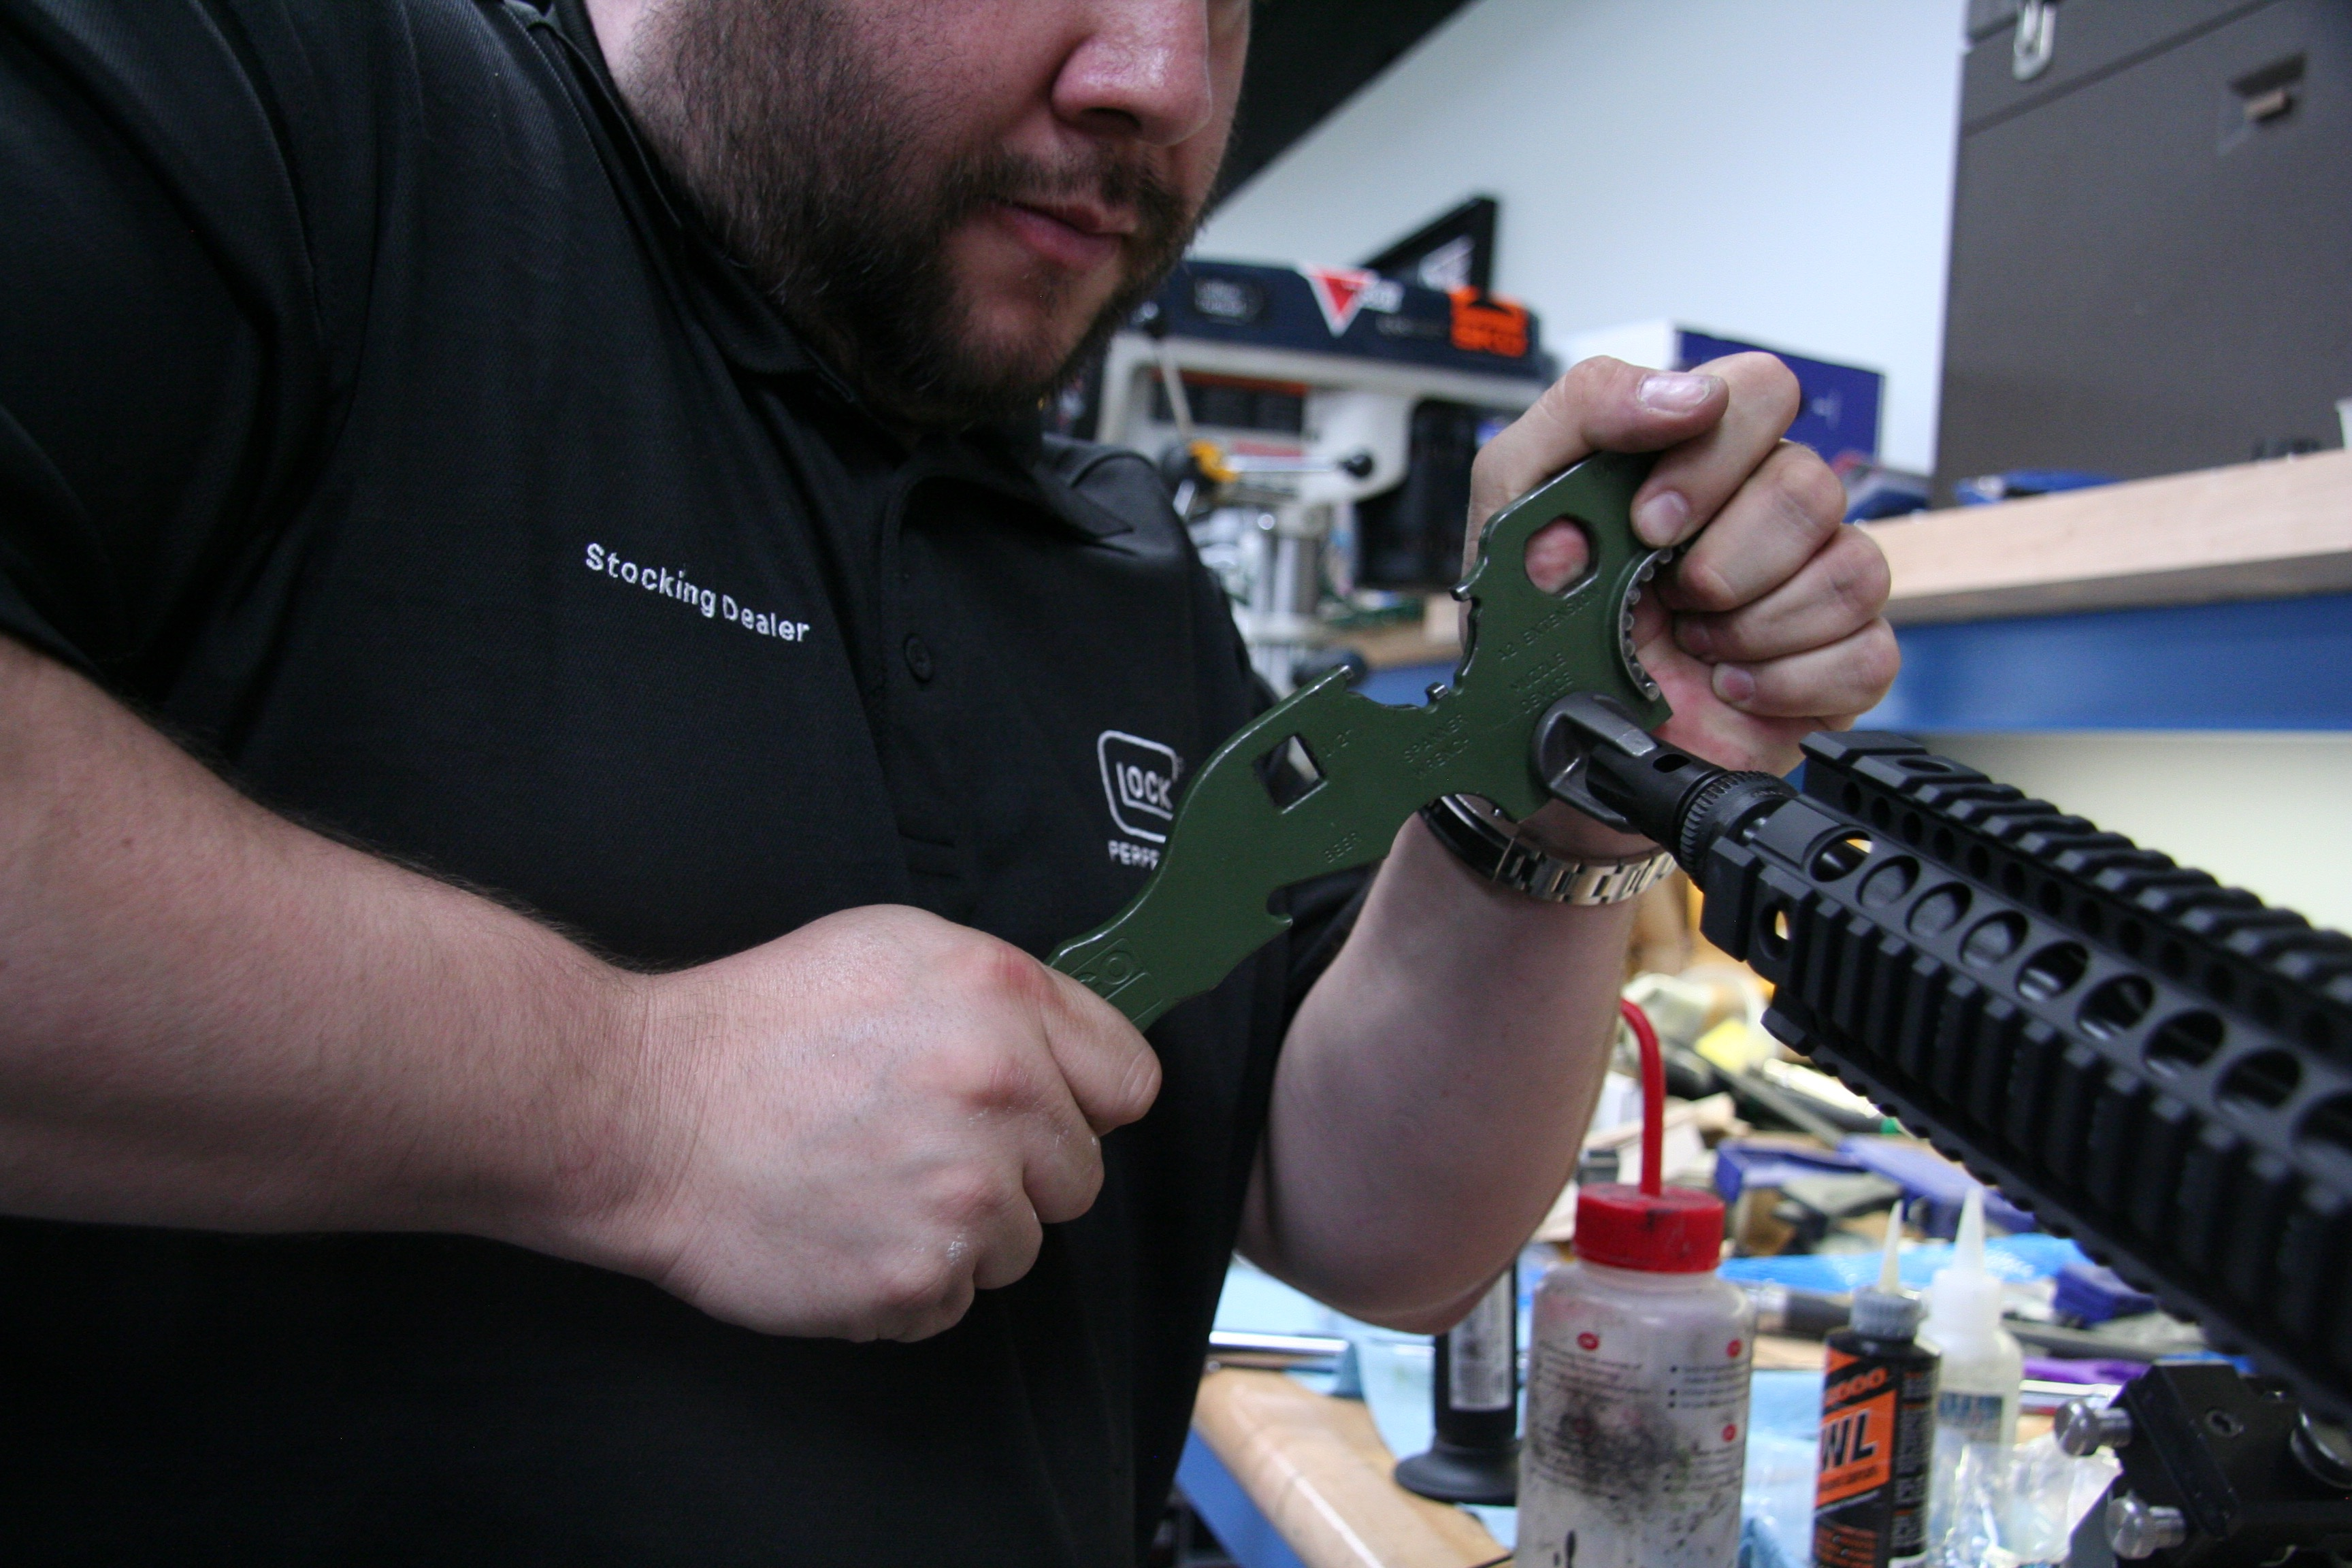 Engage Armament co owner Carlos Rabanales assemble a custom rifle. The shop had been known for customizing guns, but the smart gun flareup hurt the business.